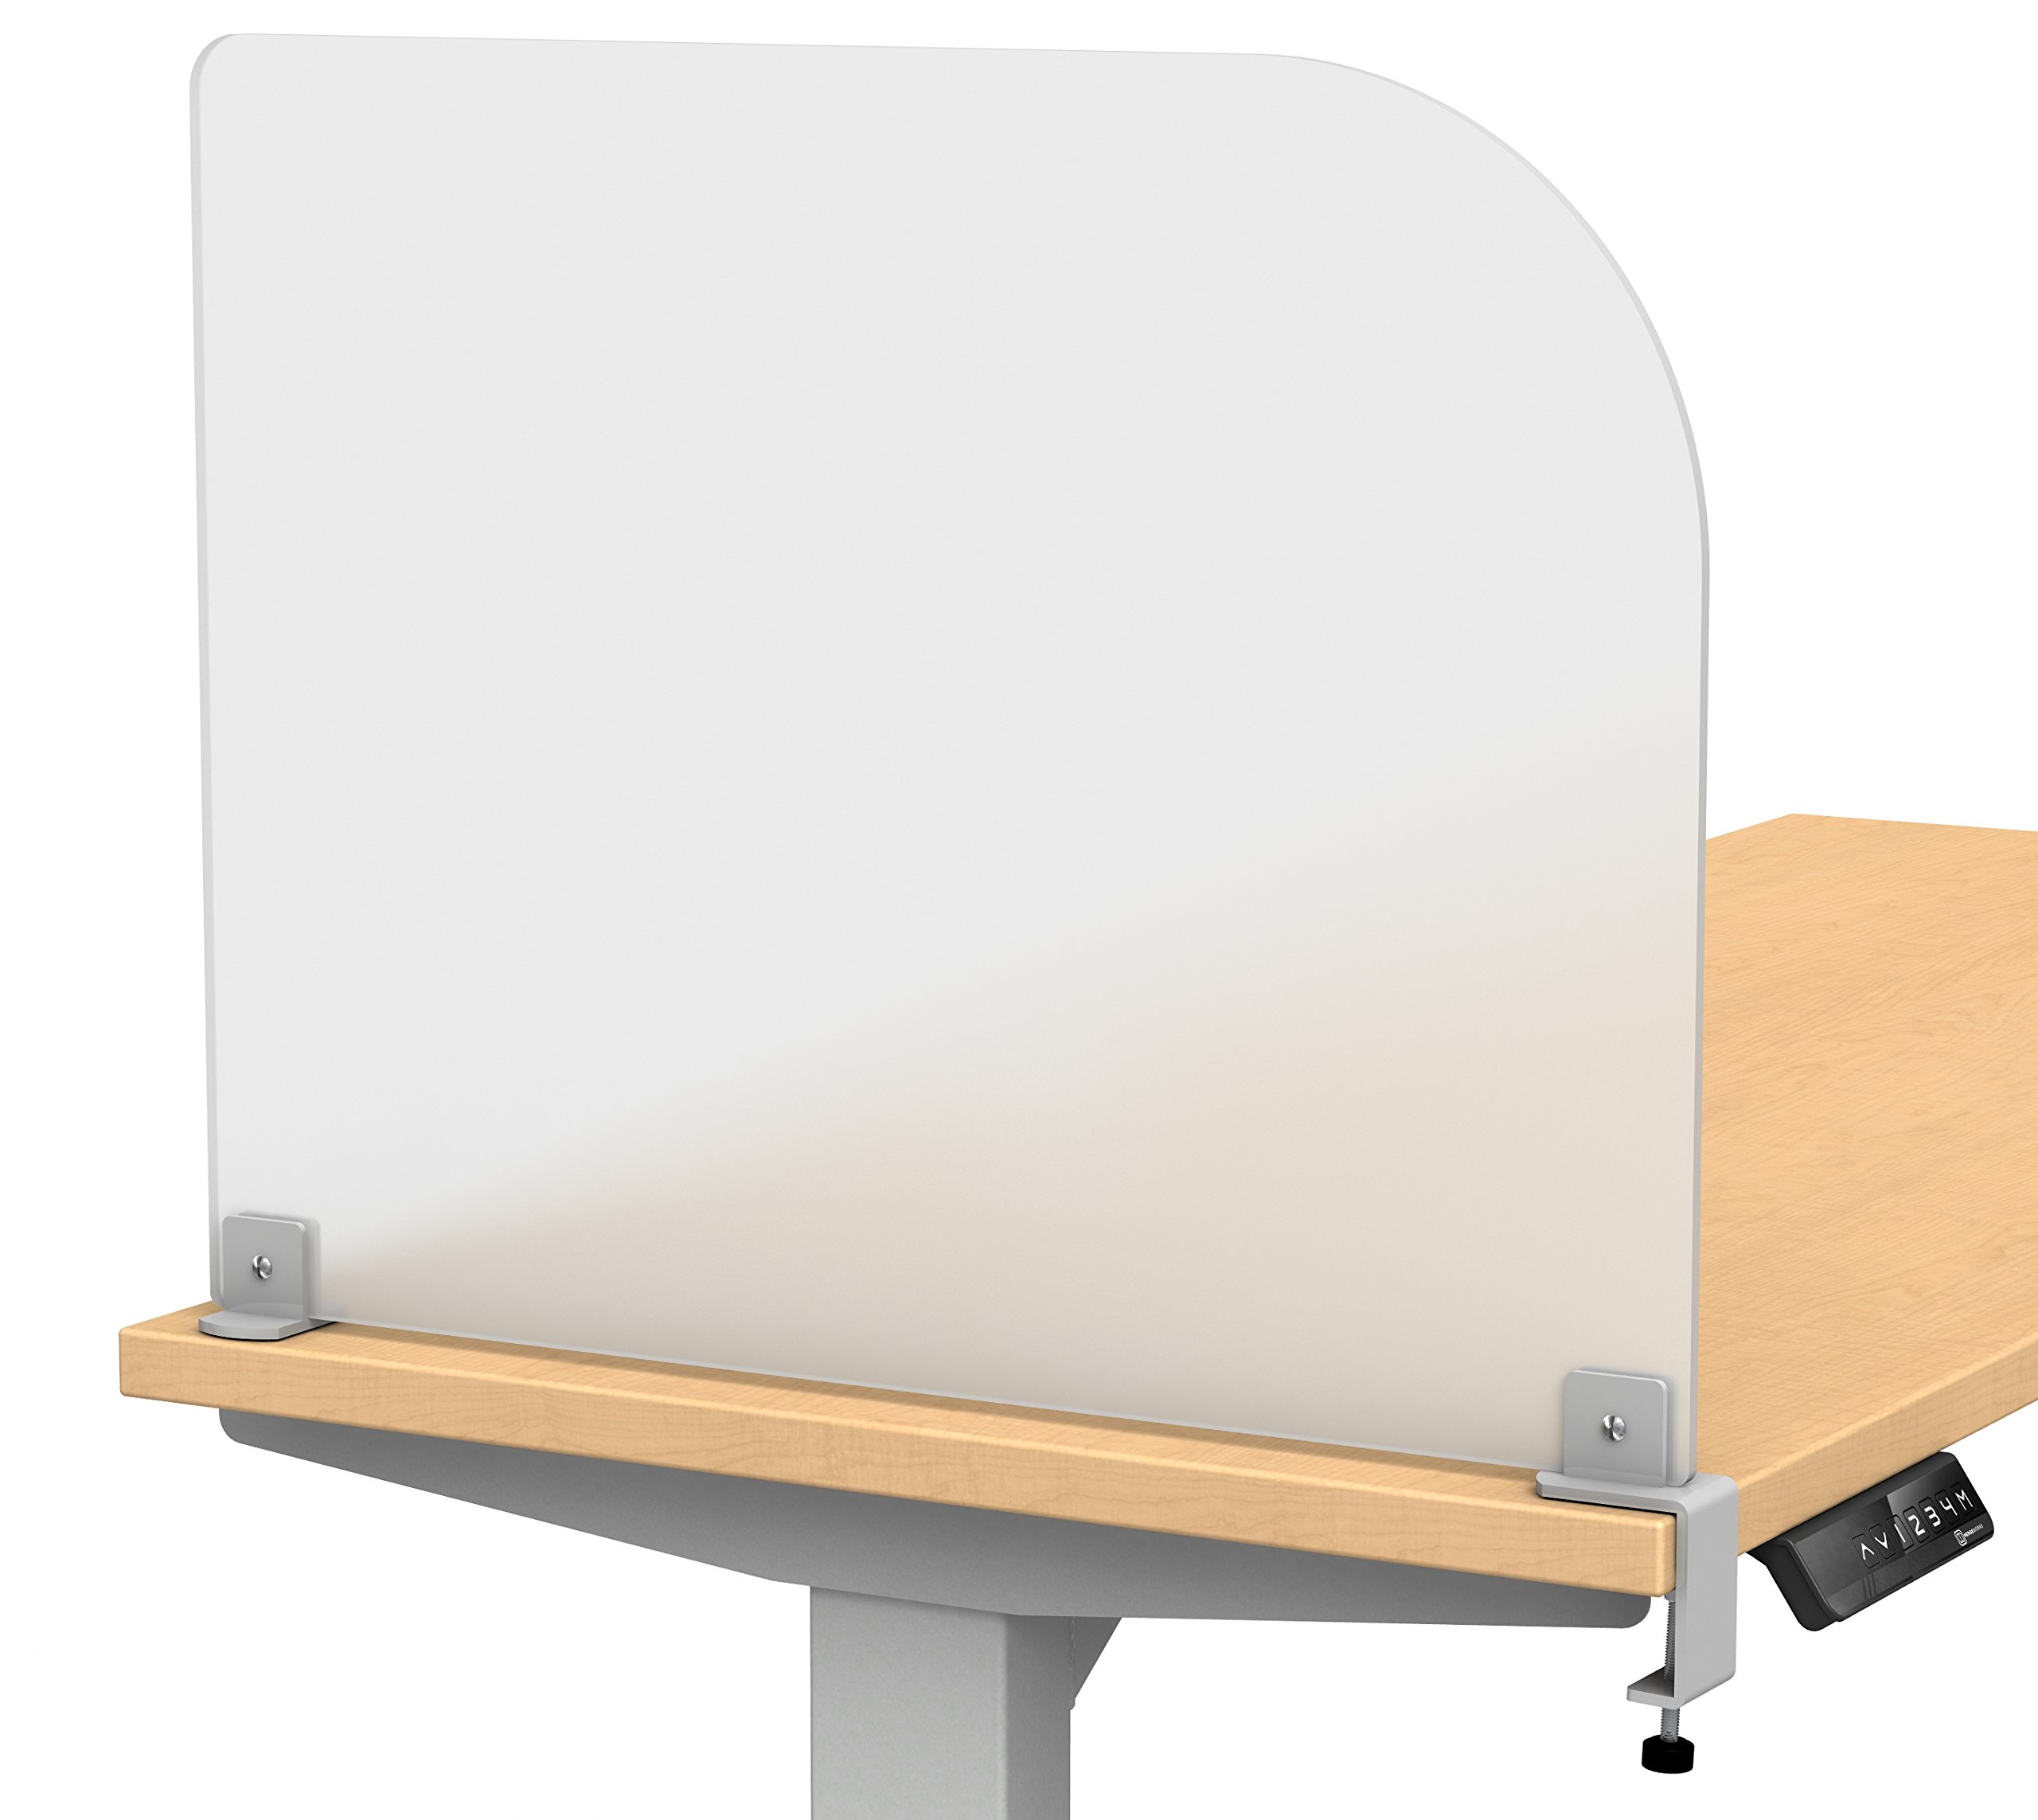 VaRoom Studio Wing Desktop Privacy Panel - Frosted Acrylic Clamp-on Desk Divider -23'' W x 18''H Partition by VaRoom